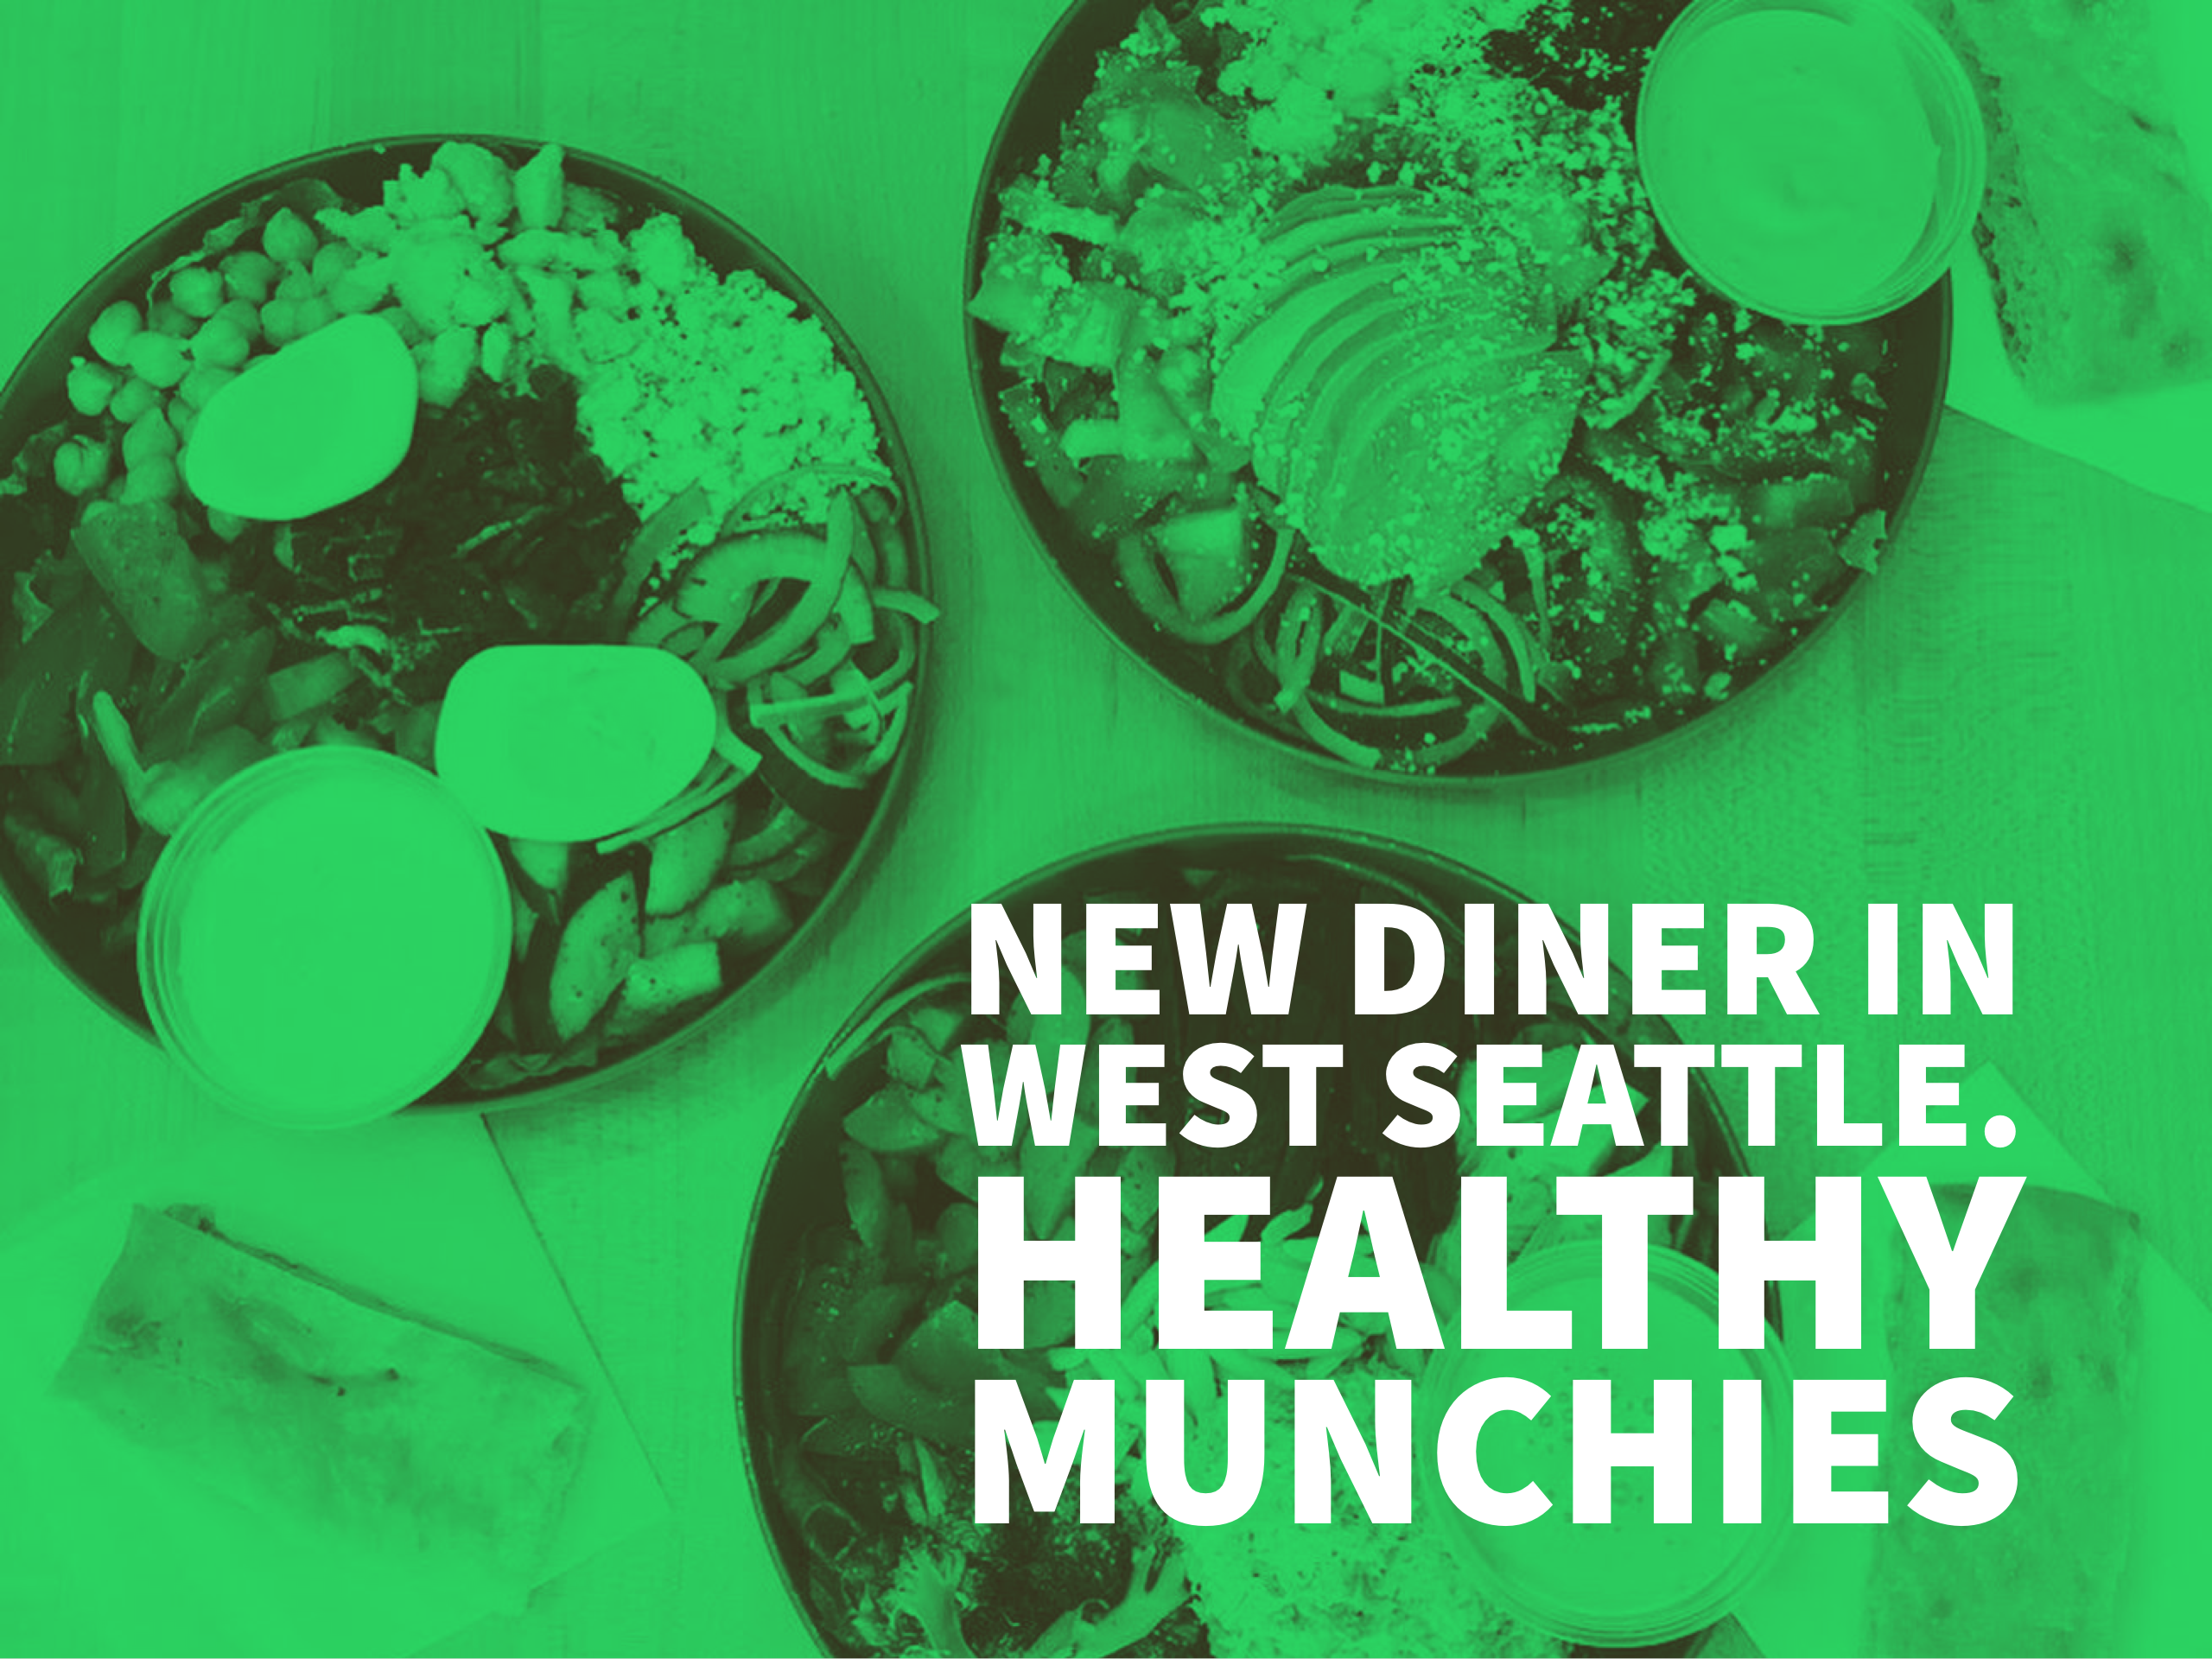 West Seattle Just Got a New Diner That Leans Toward Healthy Dishes